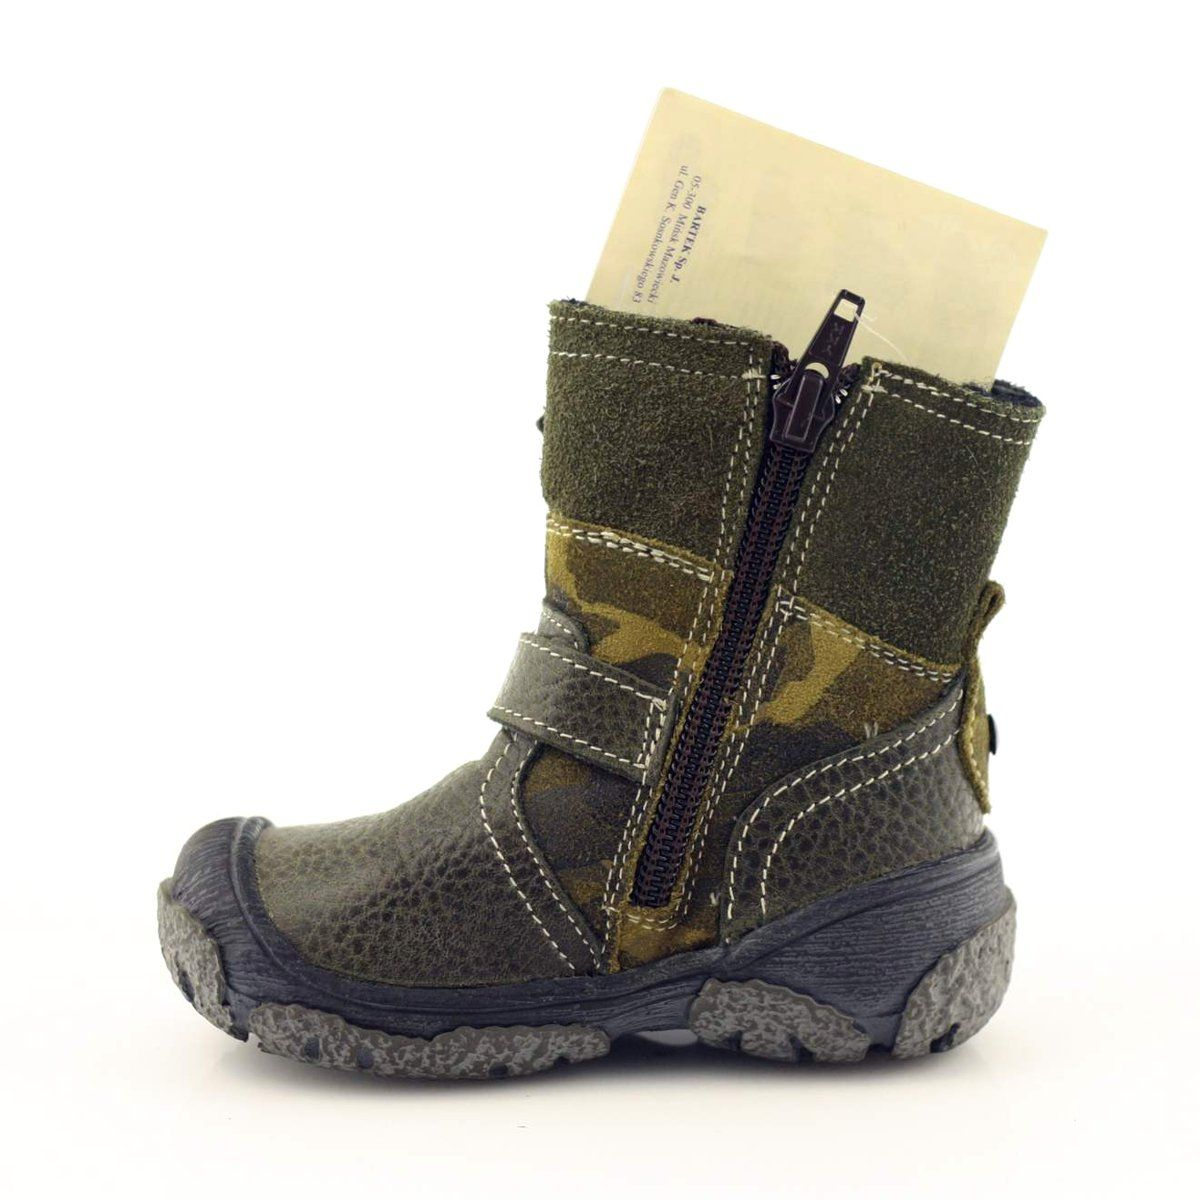 Green Boots For Kids Bartek 91543 Multicolored Boots Childrens Boots Green Boots